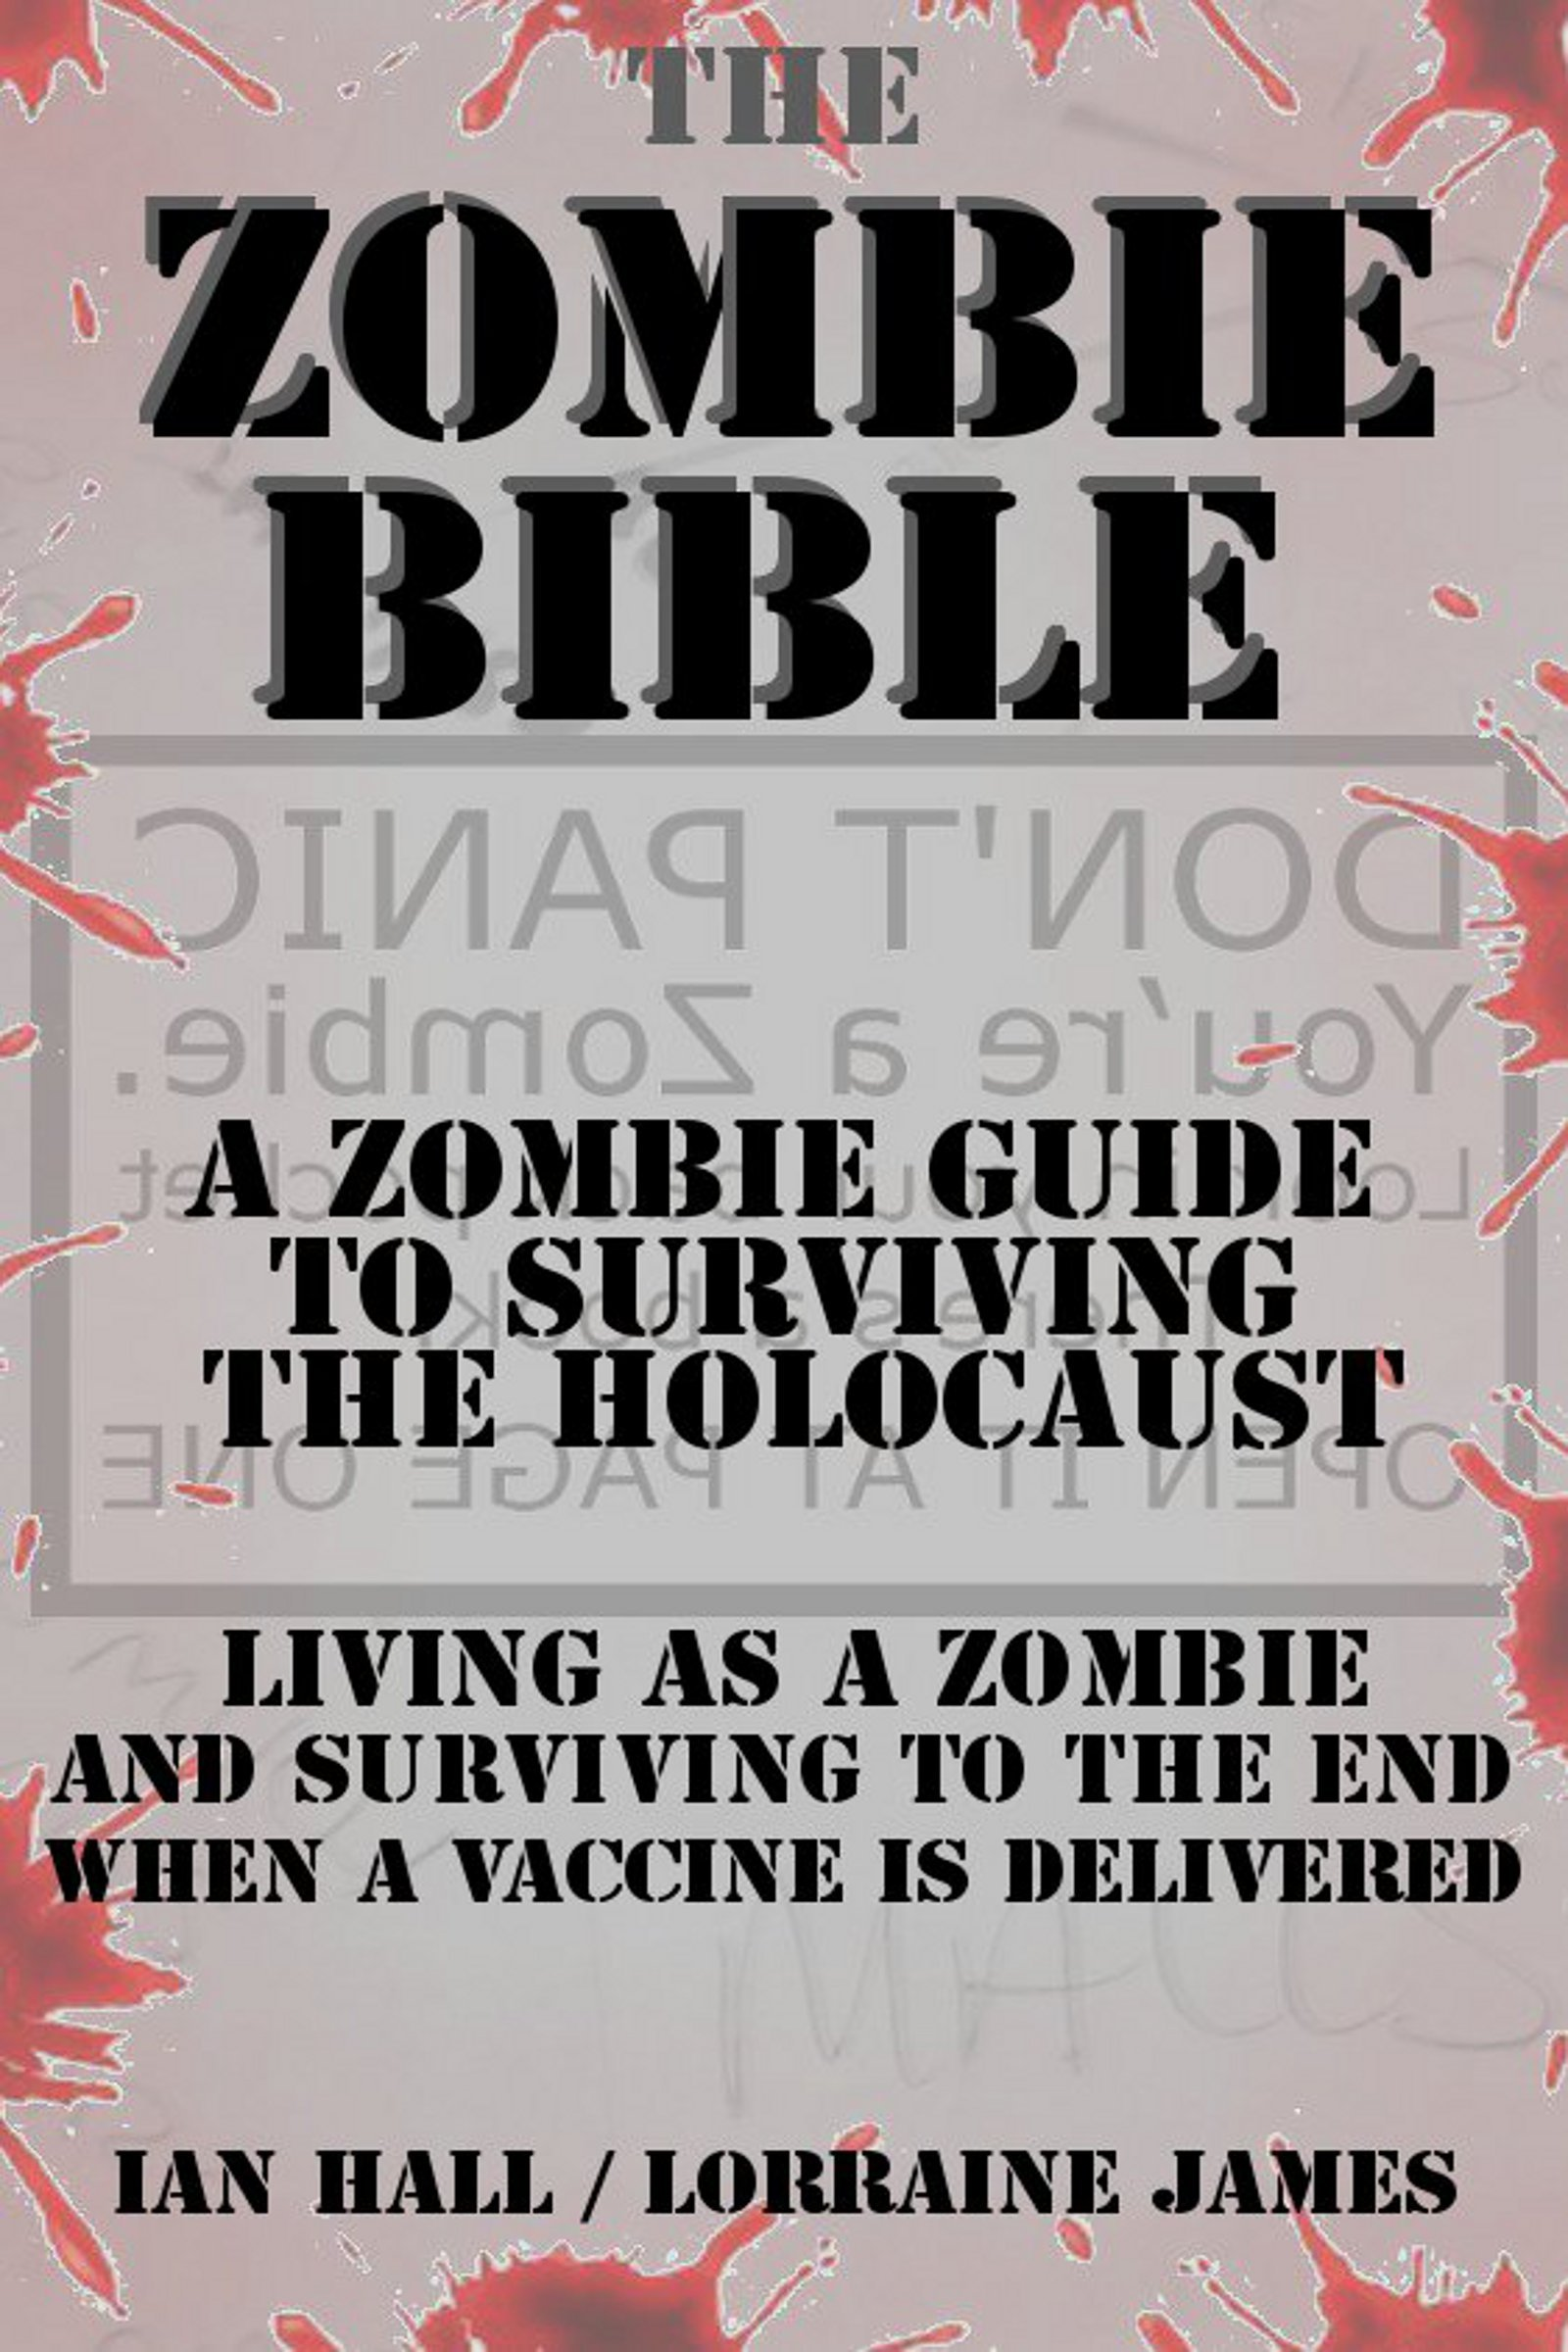 Lorraine James  Ian Hall - The Zombie Bible: a Zombie Guide to Surviving the Holocaust